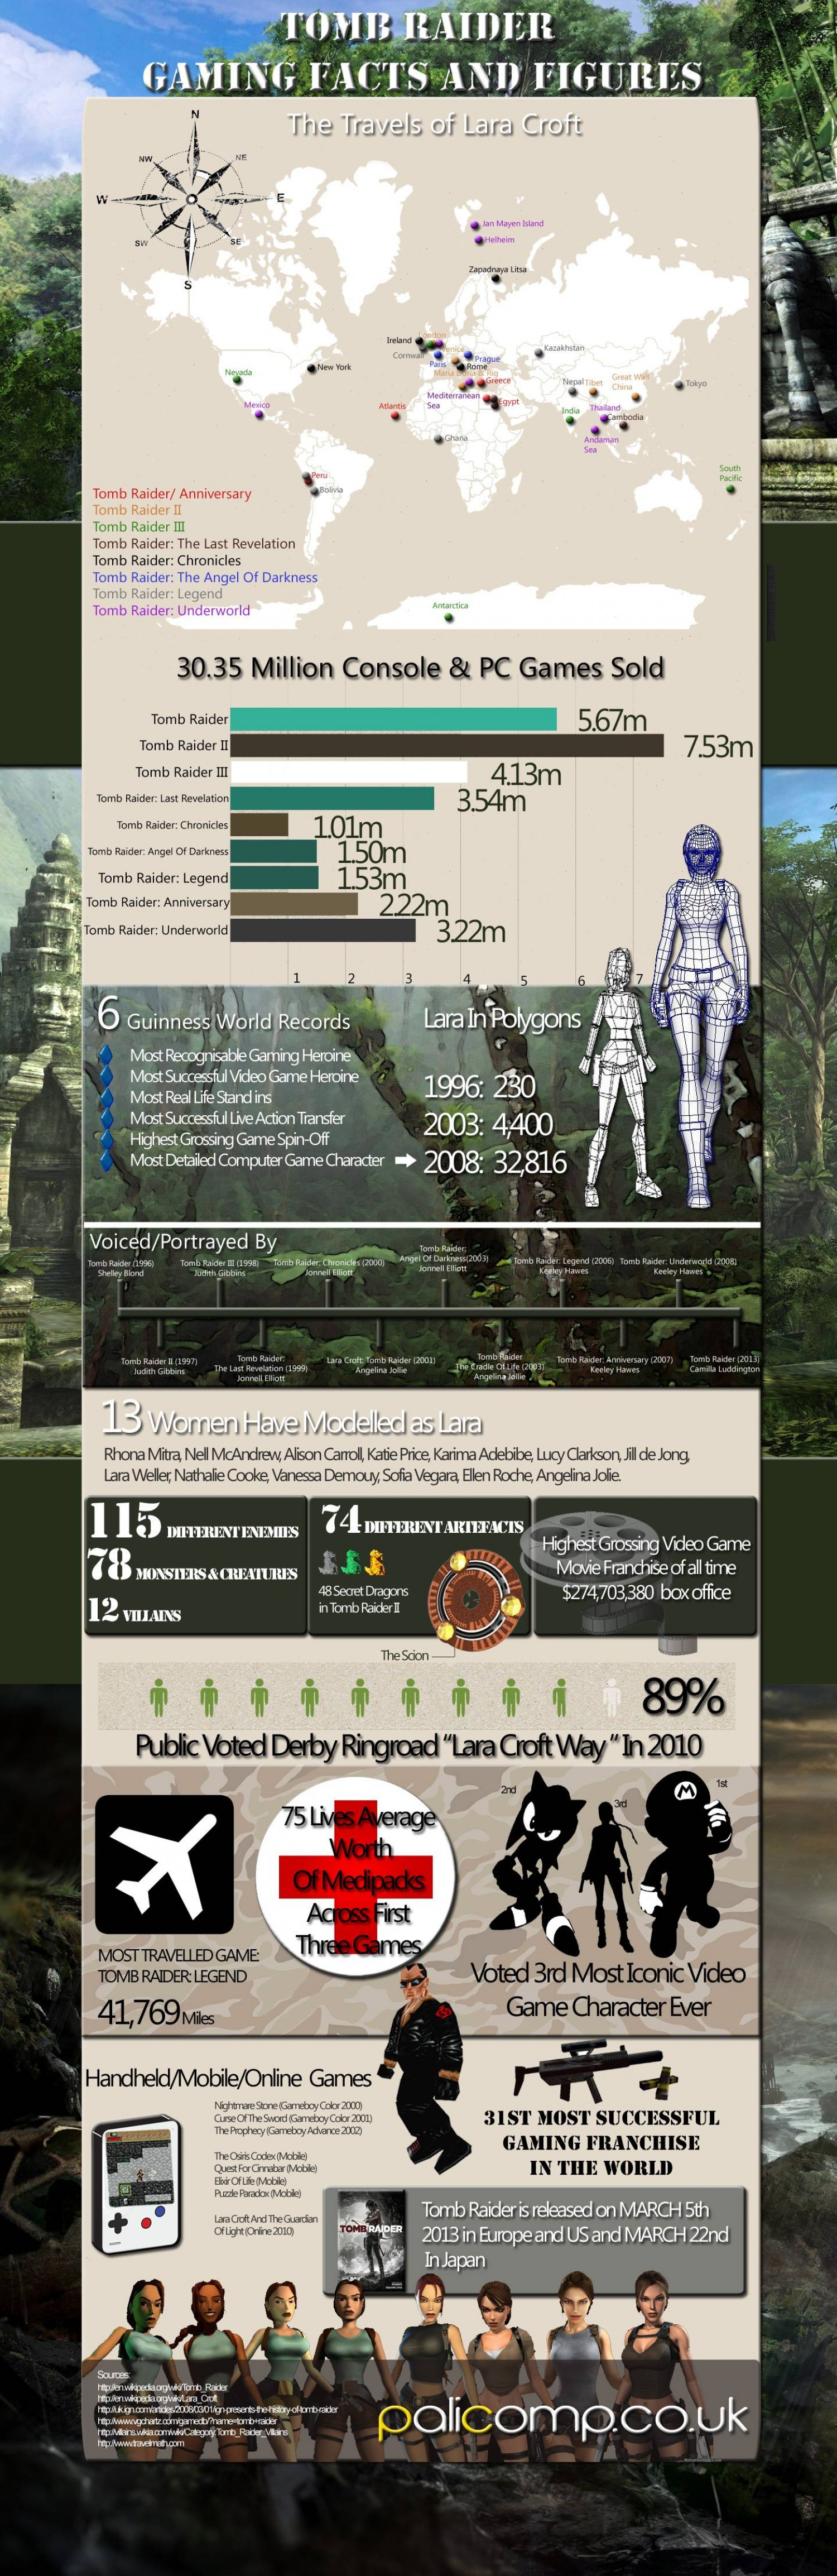 Tomb Raider - Facts And Figures